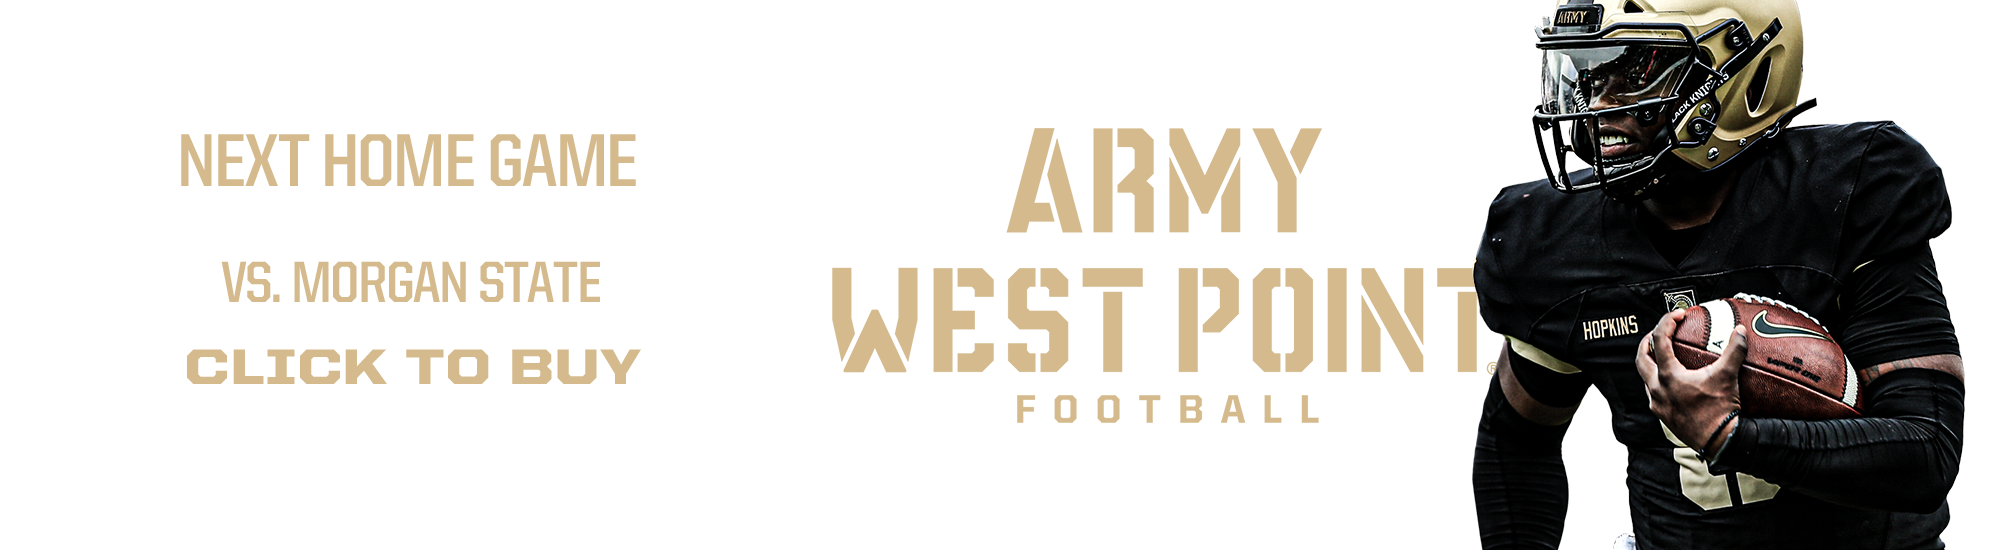 A Club - Army West Point Athletics